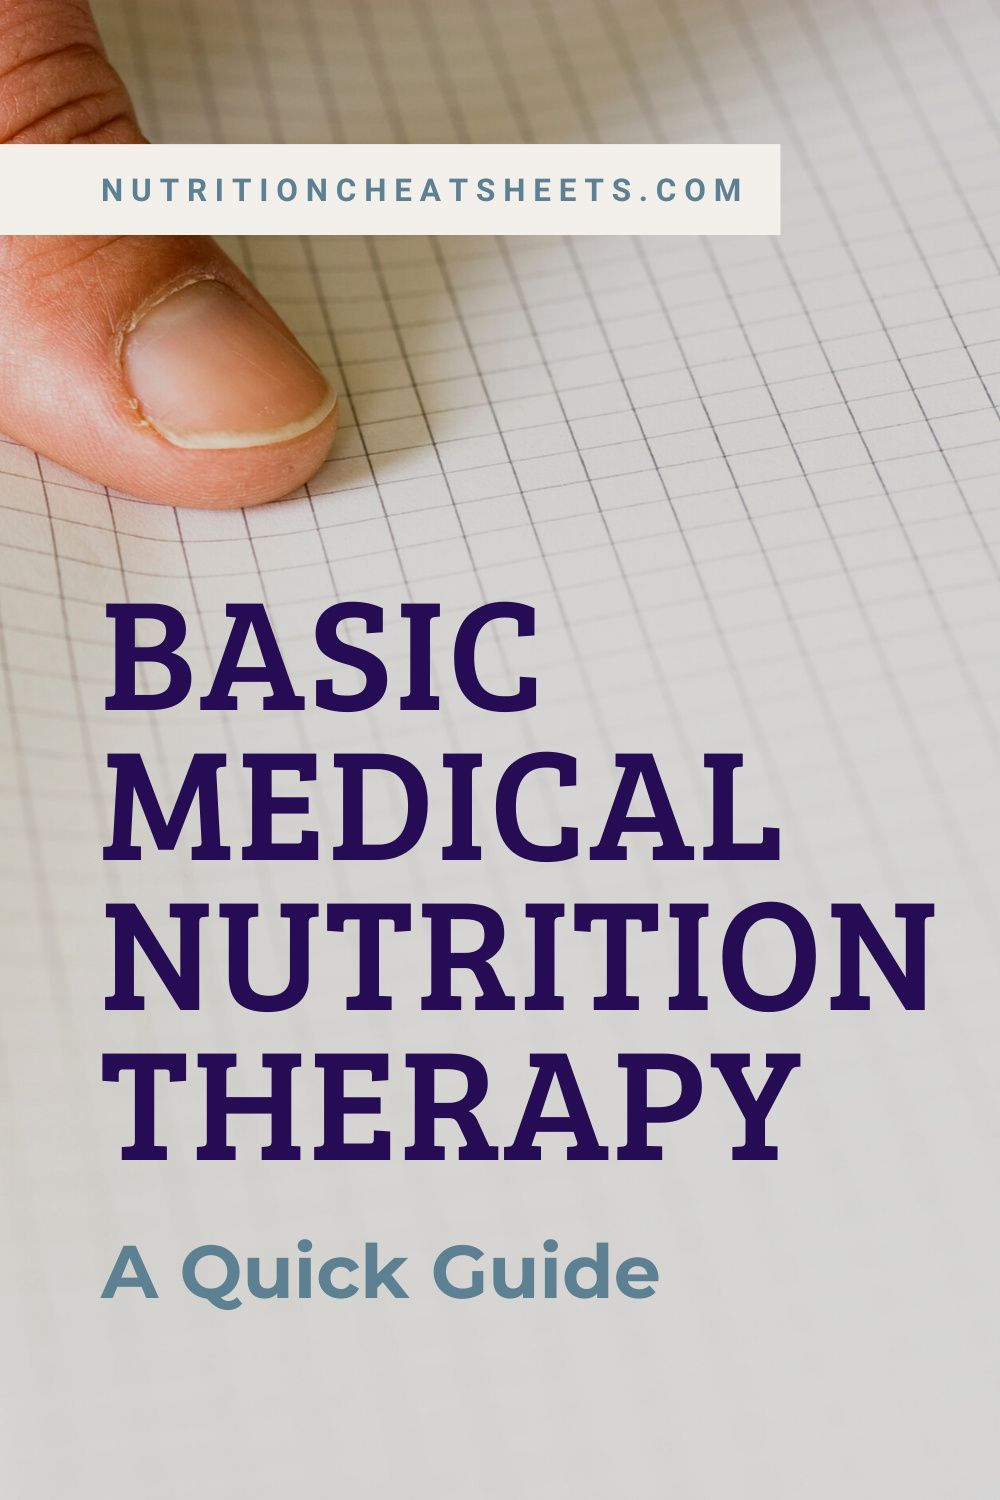 Basic Medical Nutrition Therapy For Common Disease States In 2021 Medical Therapy Medical Therapy